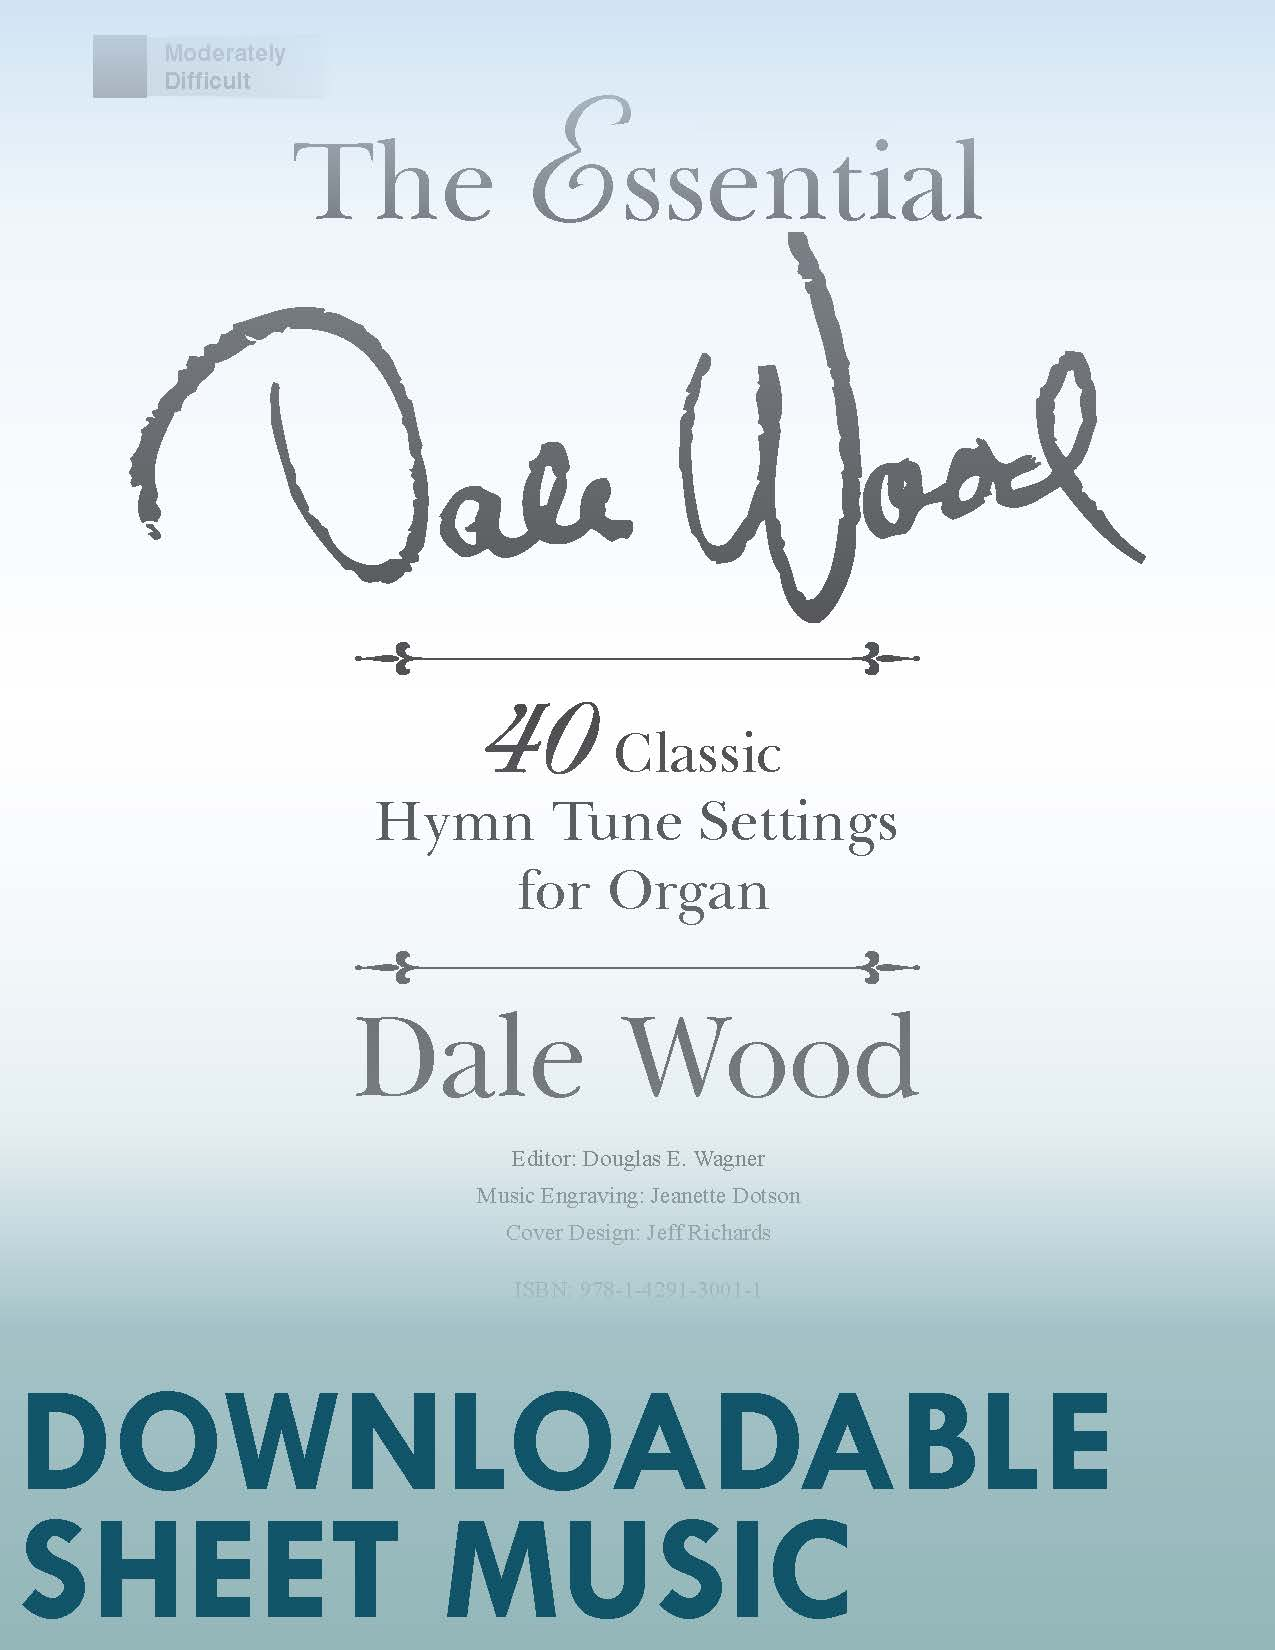 The Essential Dale Wood - Digital Download